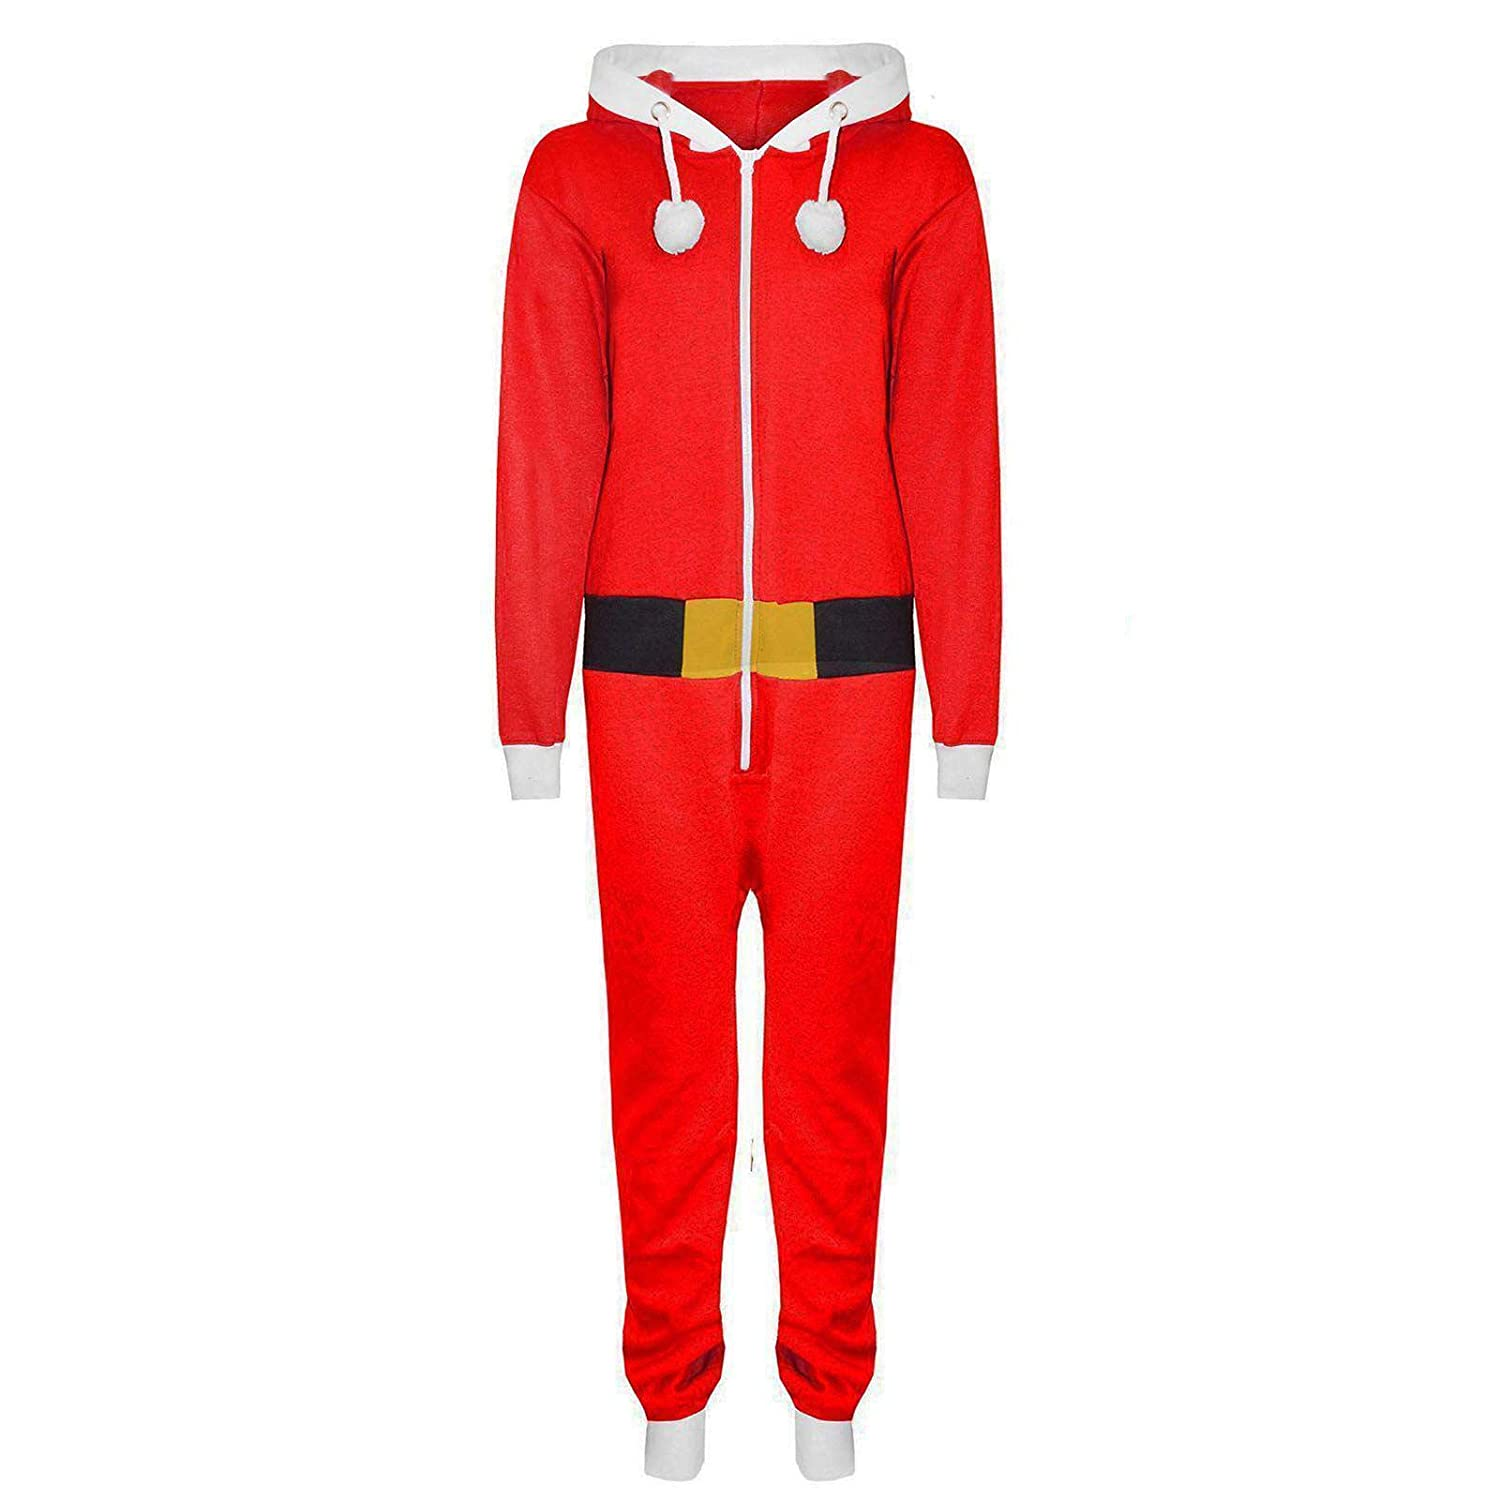 Zaif & Hari® Kids Children Boys Girls Elf Santa Helper Christmas Jumpsuit All in One Onesie Age 7-13 Years